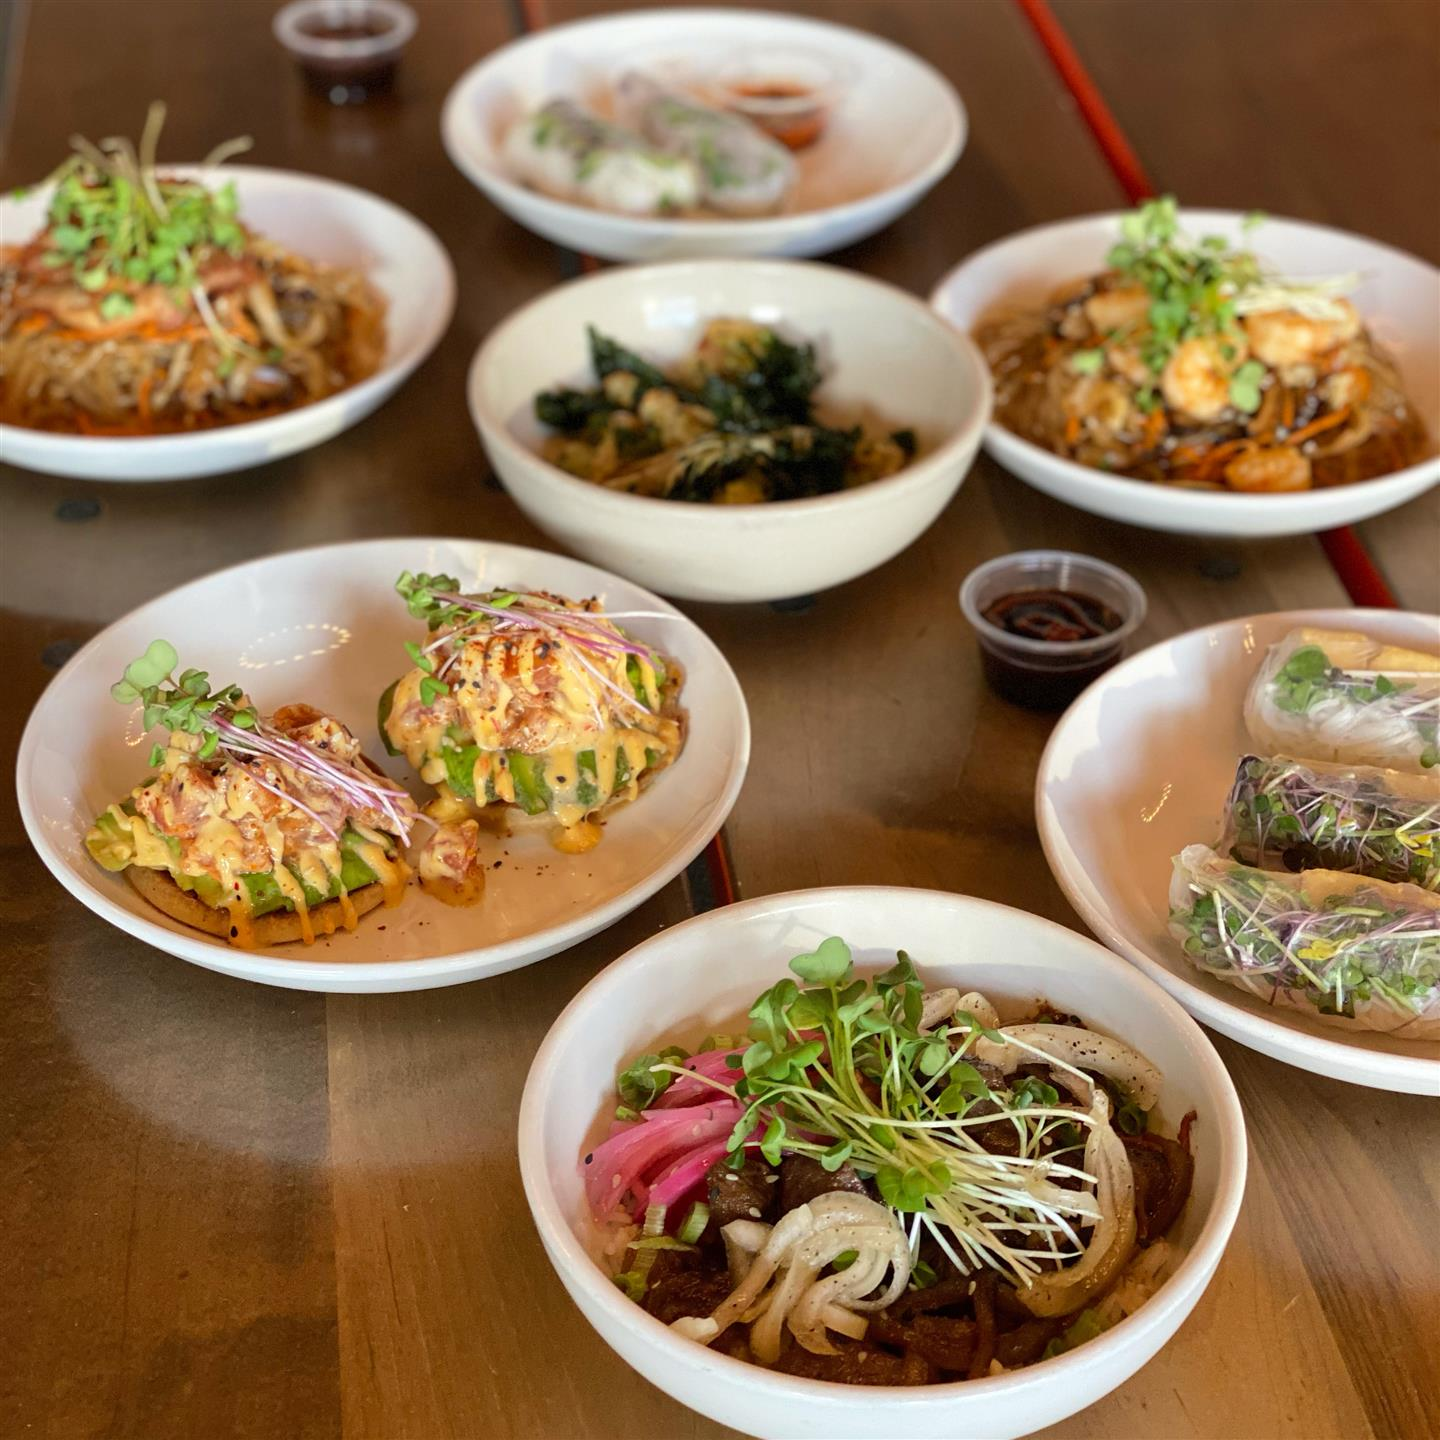 A Variety of Dishes